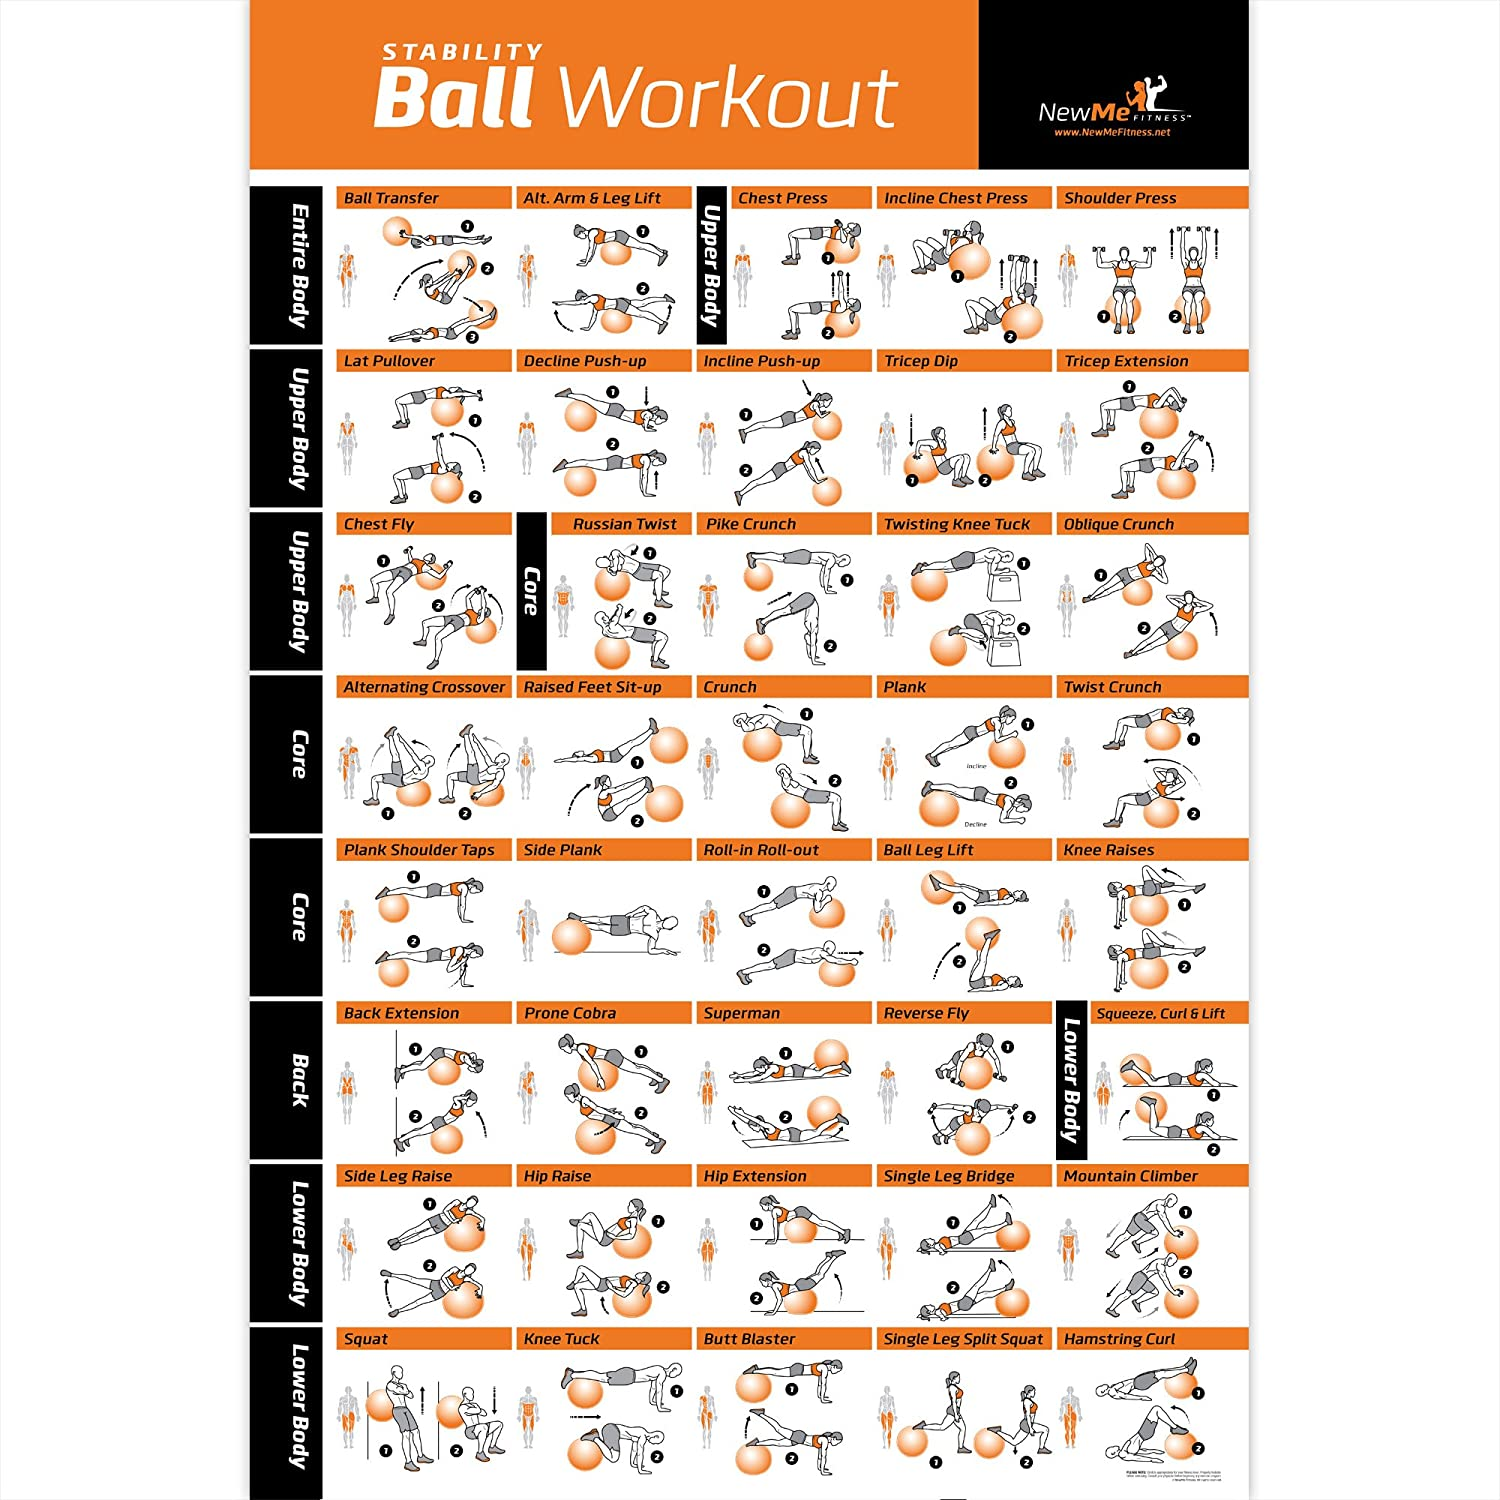 It's just a picture of Dashing Printable Exercise Ball Workouts